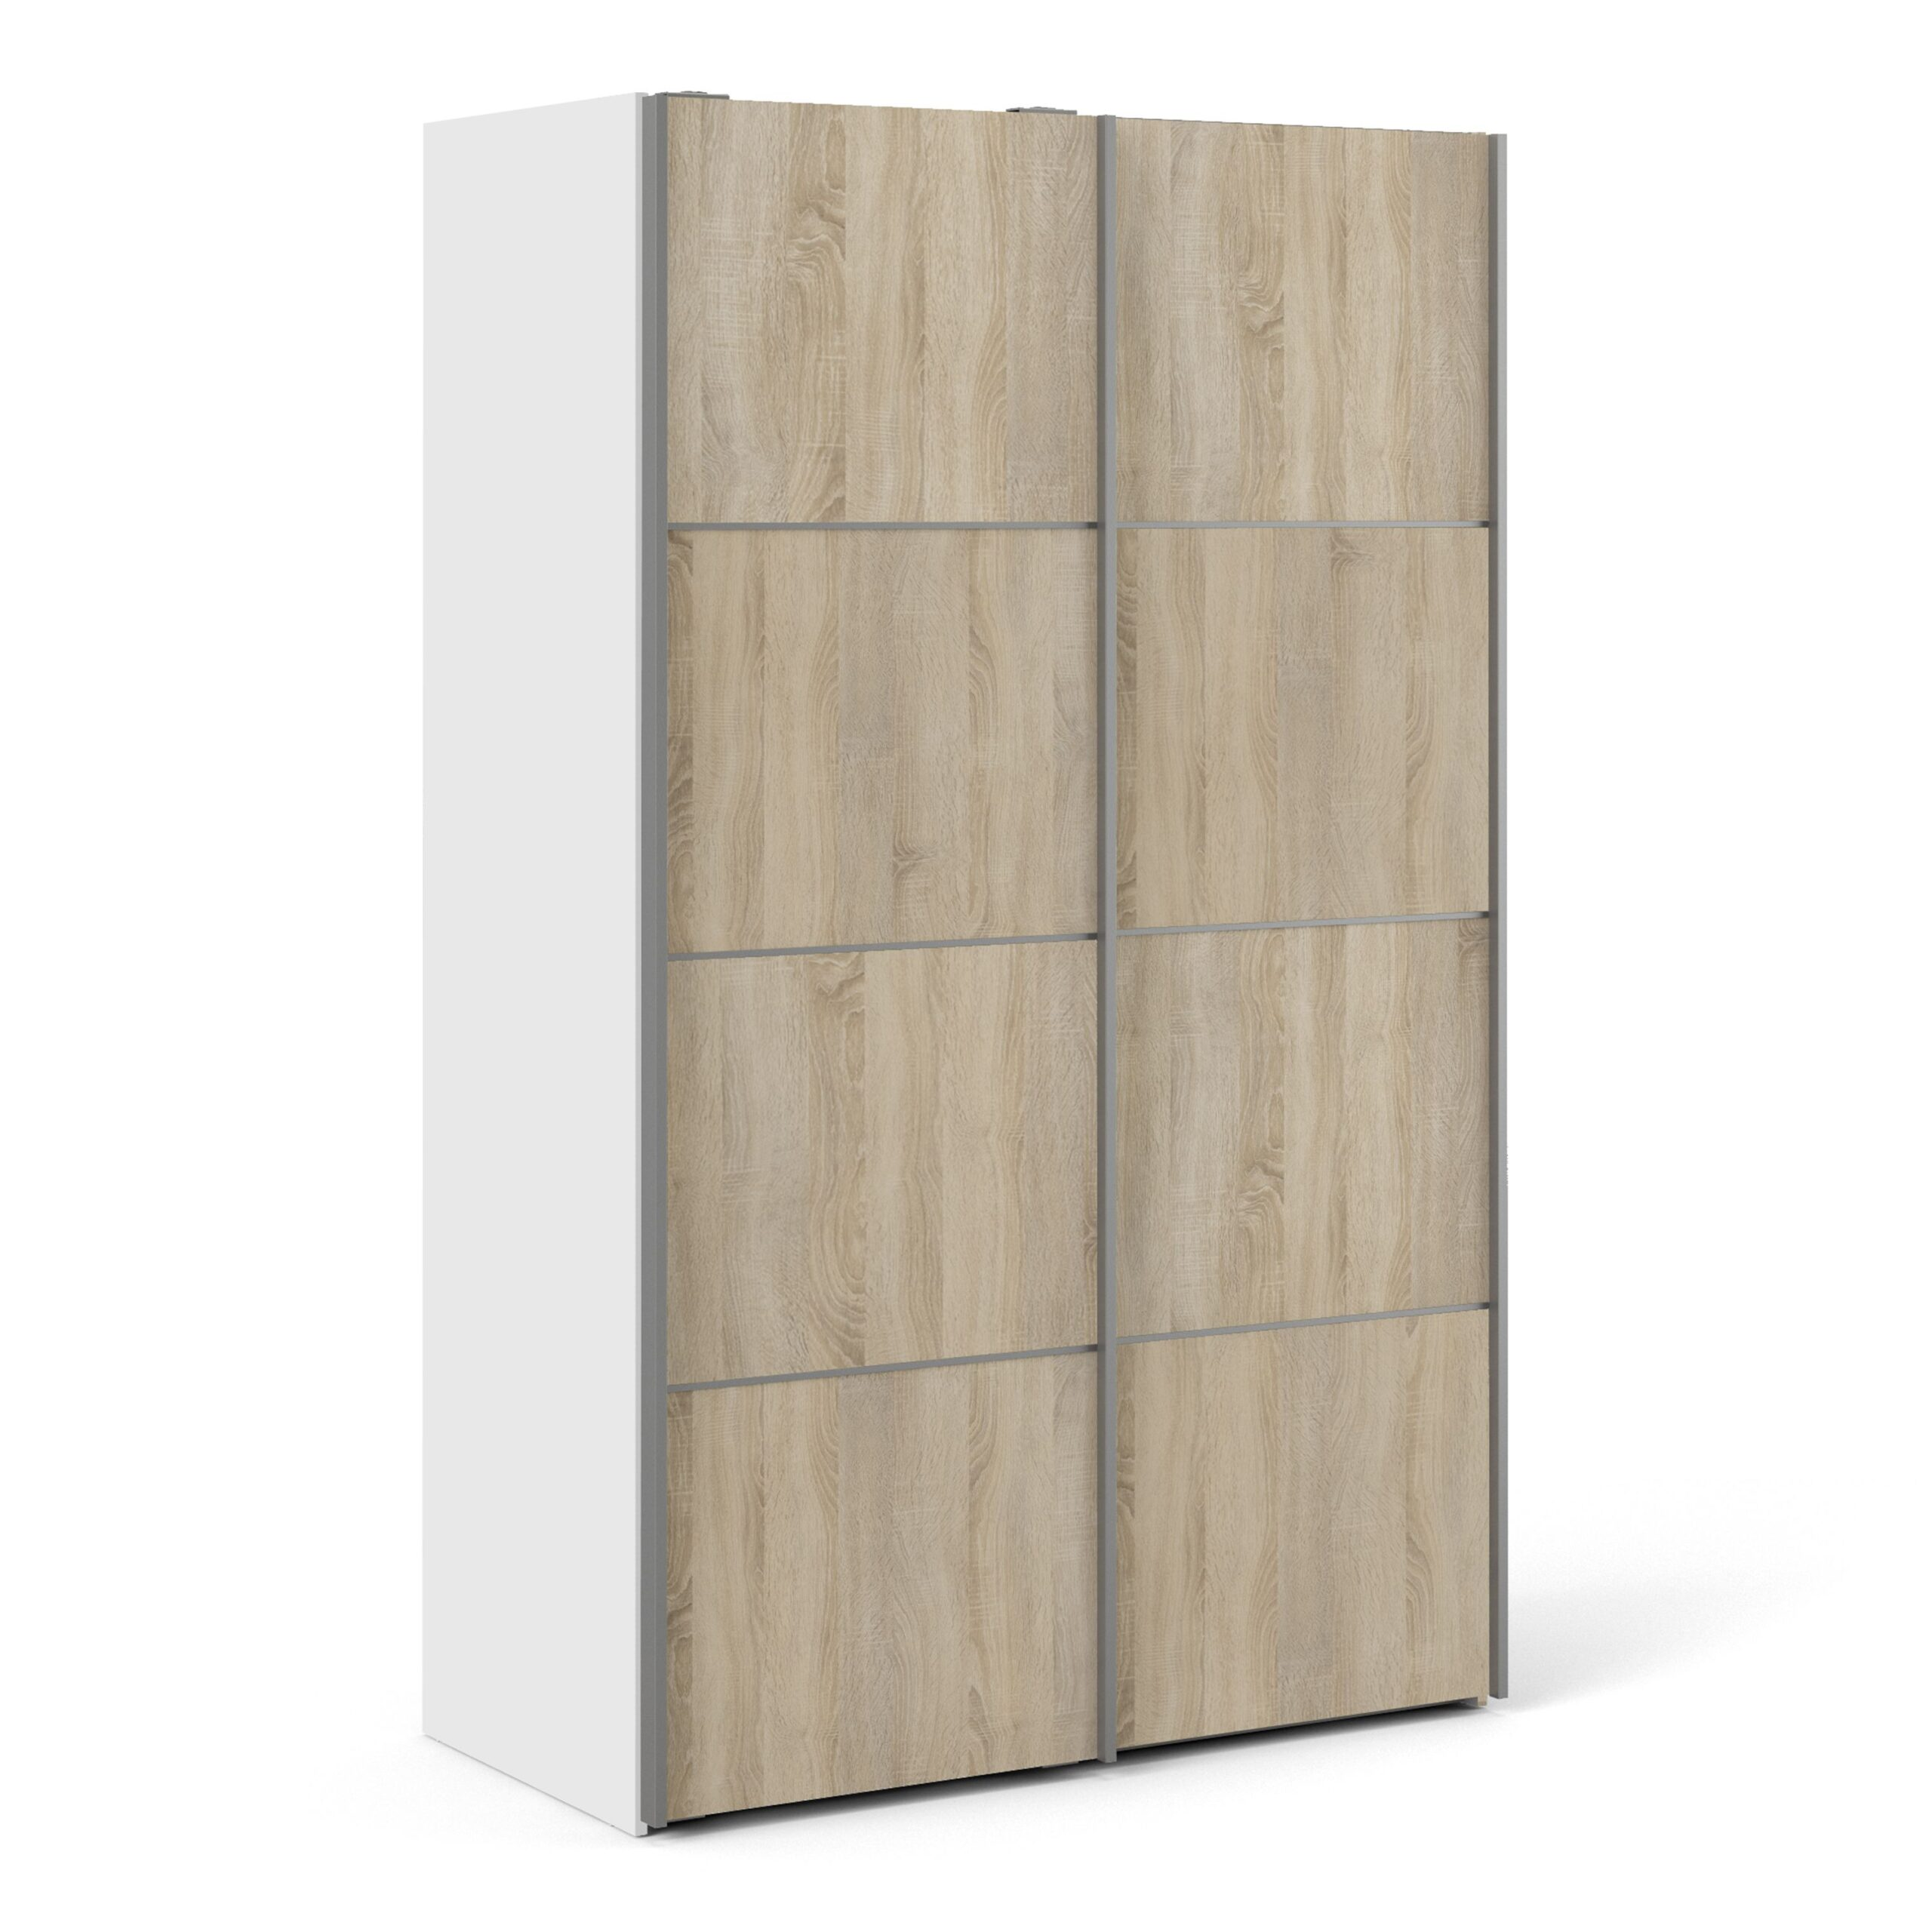 Phillipe Sliding Wardrobe 120cm in White with Oak Doors with 2 Shelves